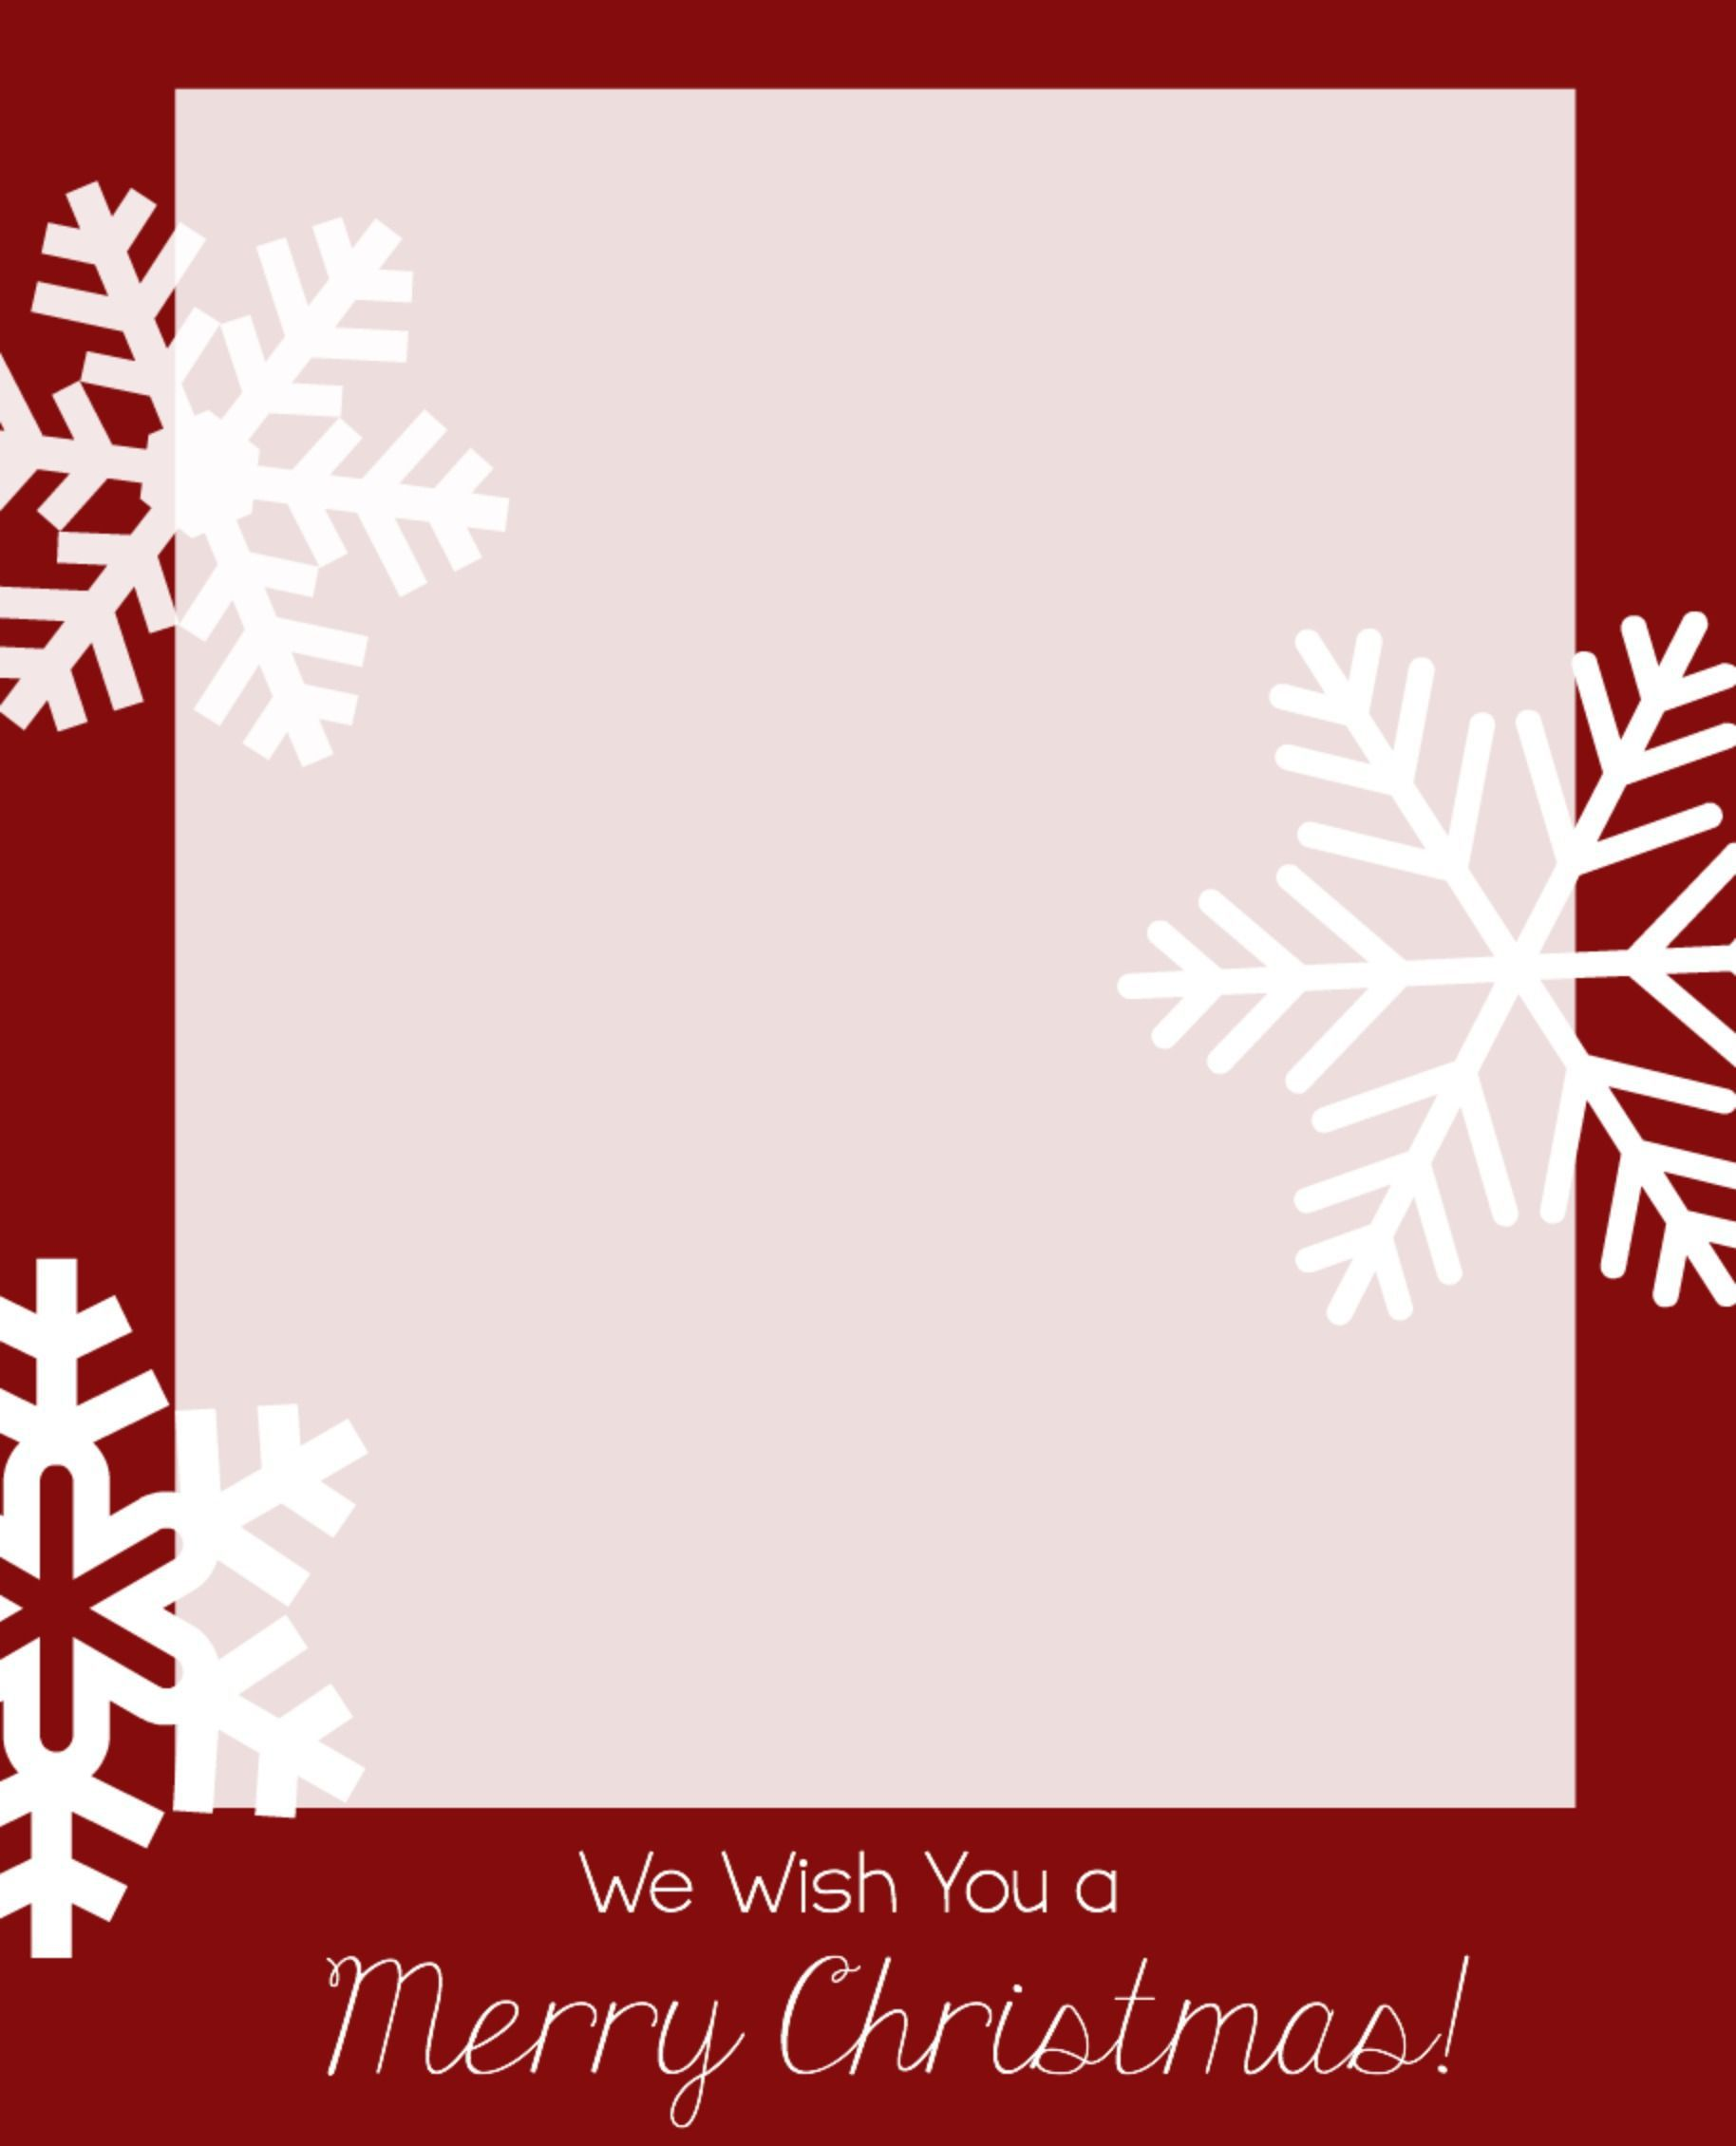 001 Stunning Free Photo Christma Card Template Inspiration  Templates For Photoshop OnlineFull